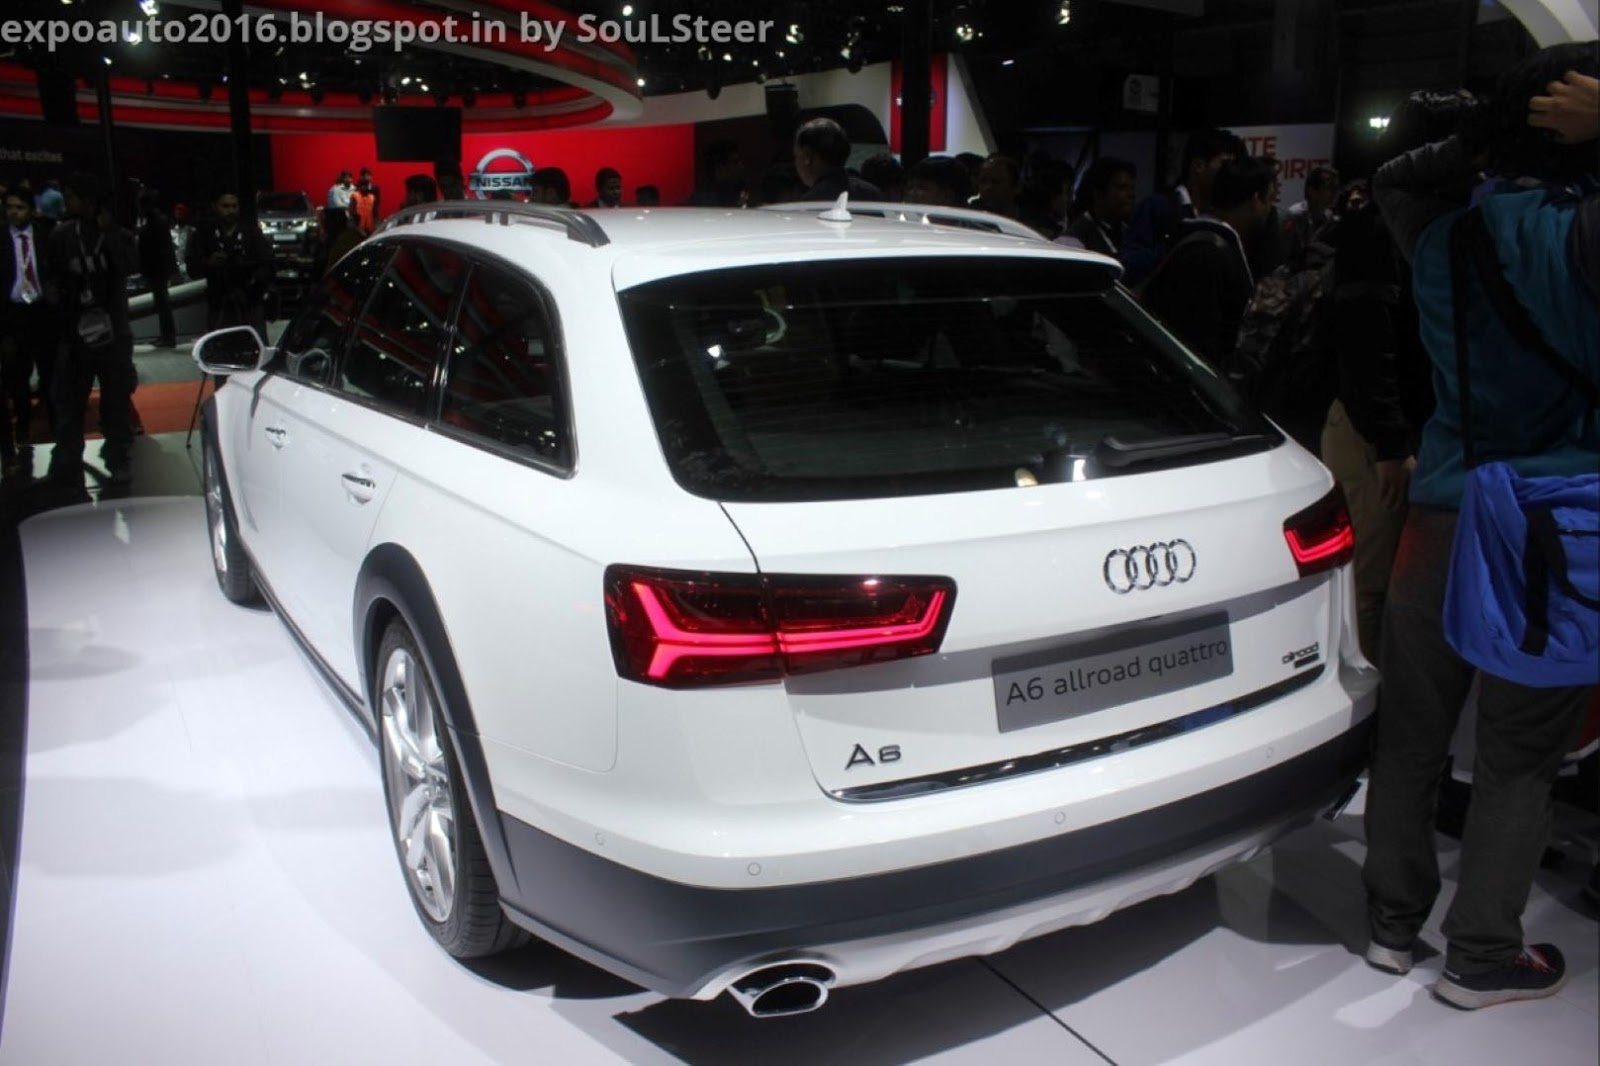 Audi A6 Allroad Quattro Station Wagon On Display At Auto Expo 2016